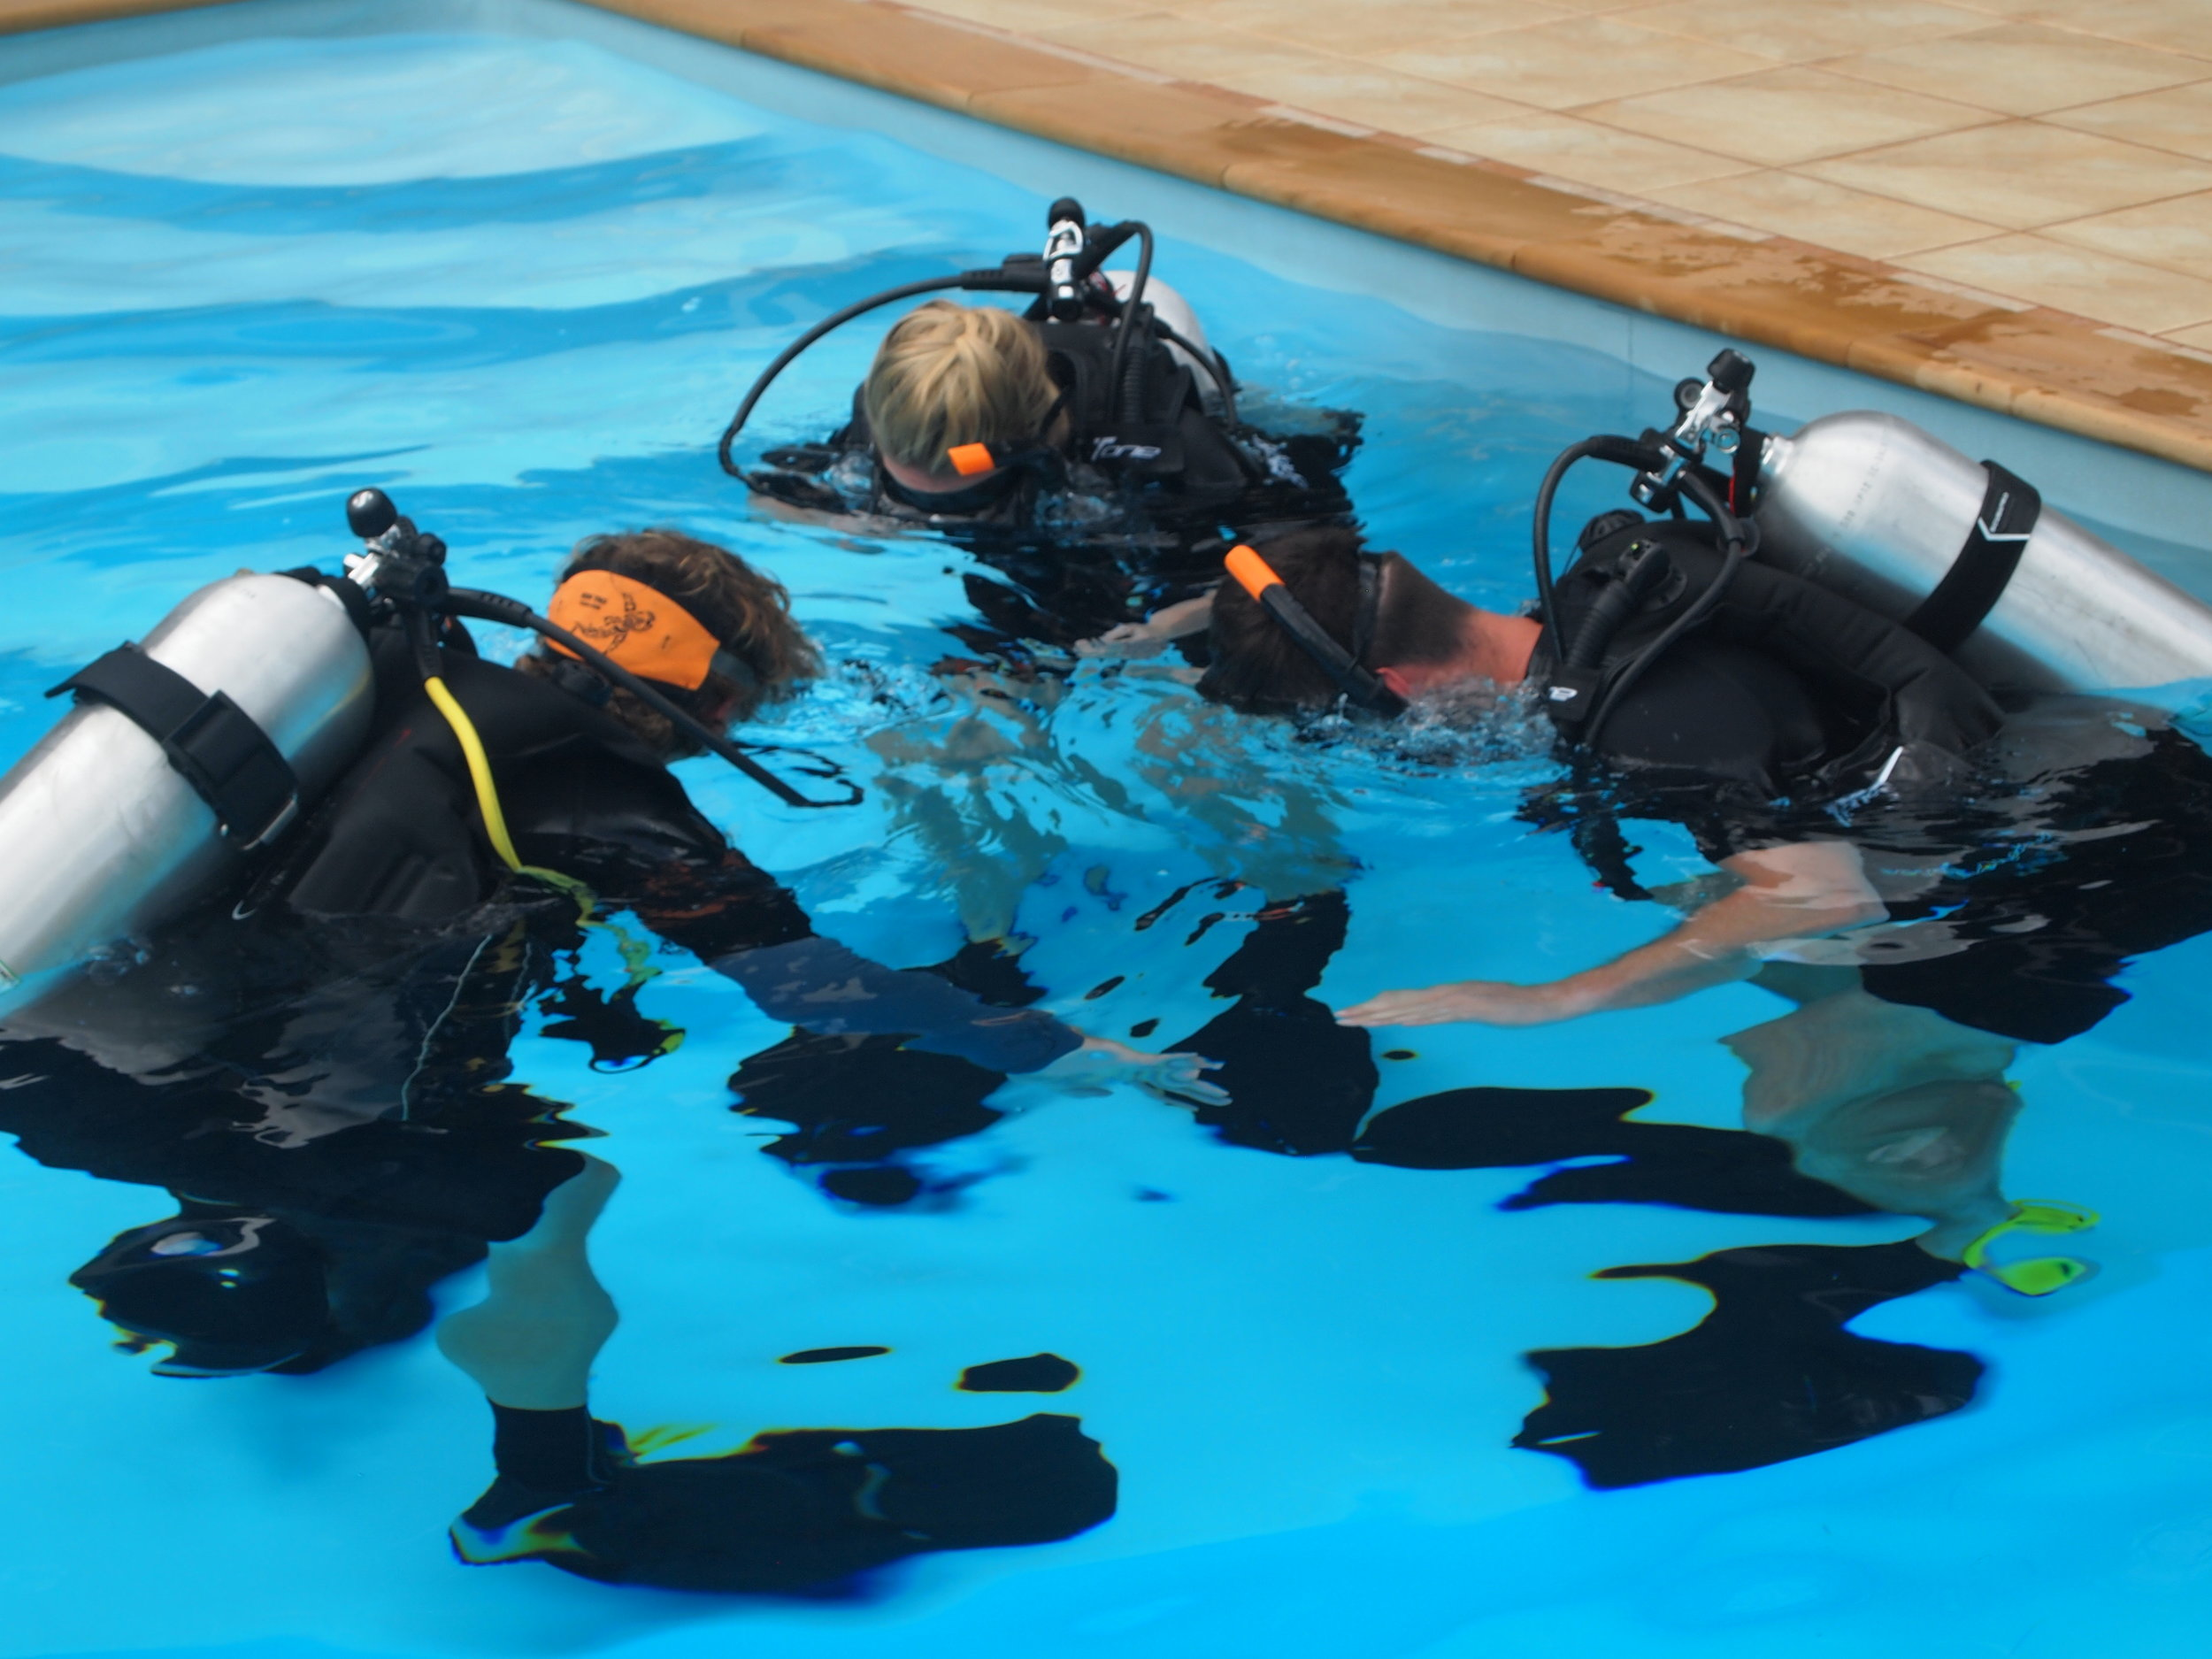 Discover Scuba Diving   The PADI Discover Scuba Diving program (DSD) is a very popular one day teaser that allows you to get a introduction into diving without committing to a three day course.  We recommend anyone looking to start diving try this first.   Find Out More.